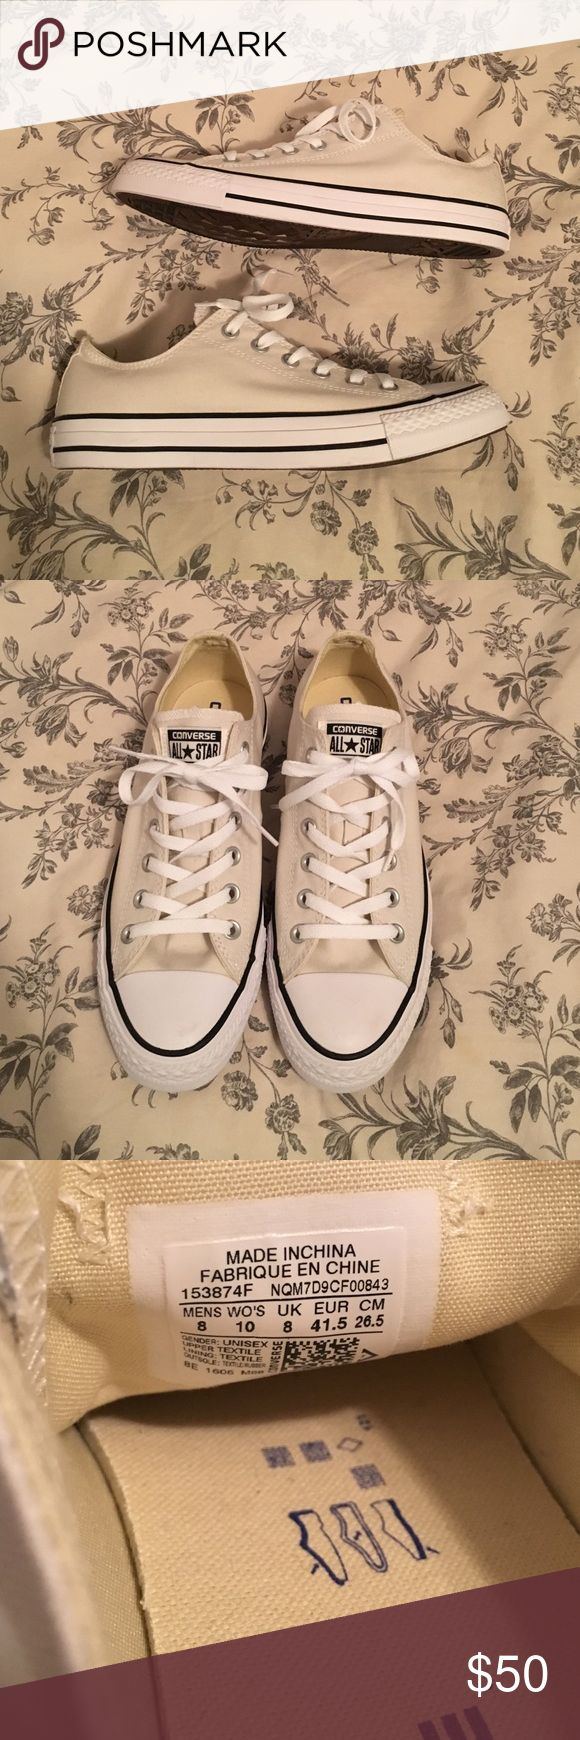 Off White Converse Low Tops Brand new Converse low tops in a gorgeous off white color. Selling because I have too many pairs of sneakers 😔 Comes with box! Size 10 women's, size 8 men's. Converse Shoes Sneakers